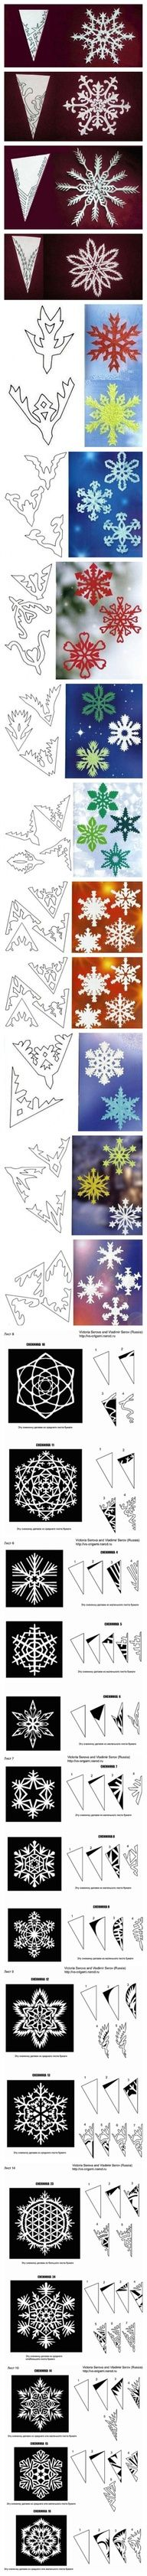 snowflakes patterns